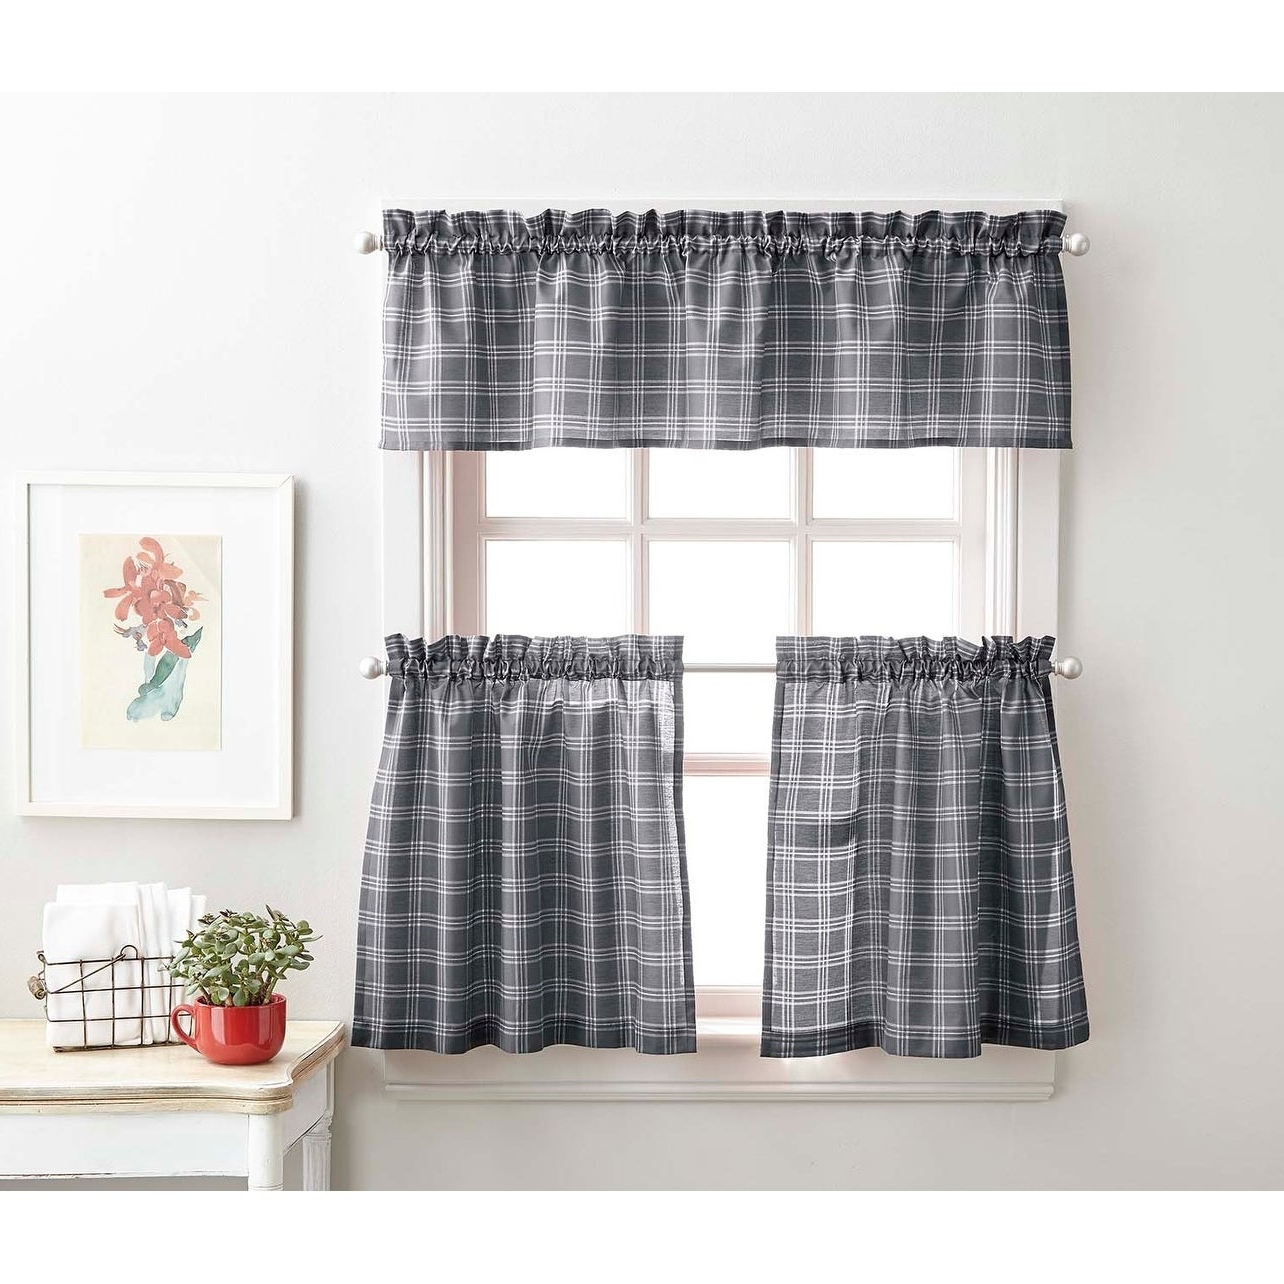 "Lodge Plaid 3 Piece Kitchen Curtain Tier And Valance Set – 36"" 3pc Set Inside Best And Newest Cotton Blend Classic Checkered Decorative Window Curtains (View 11 of 20)"